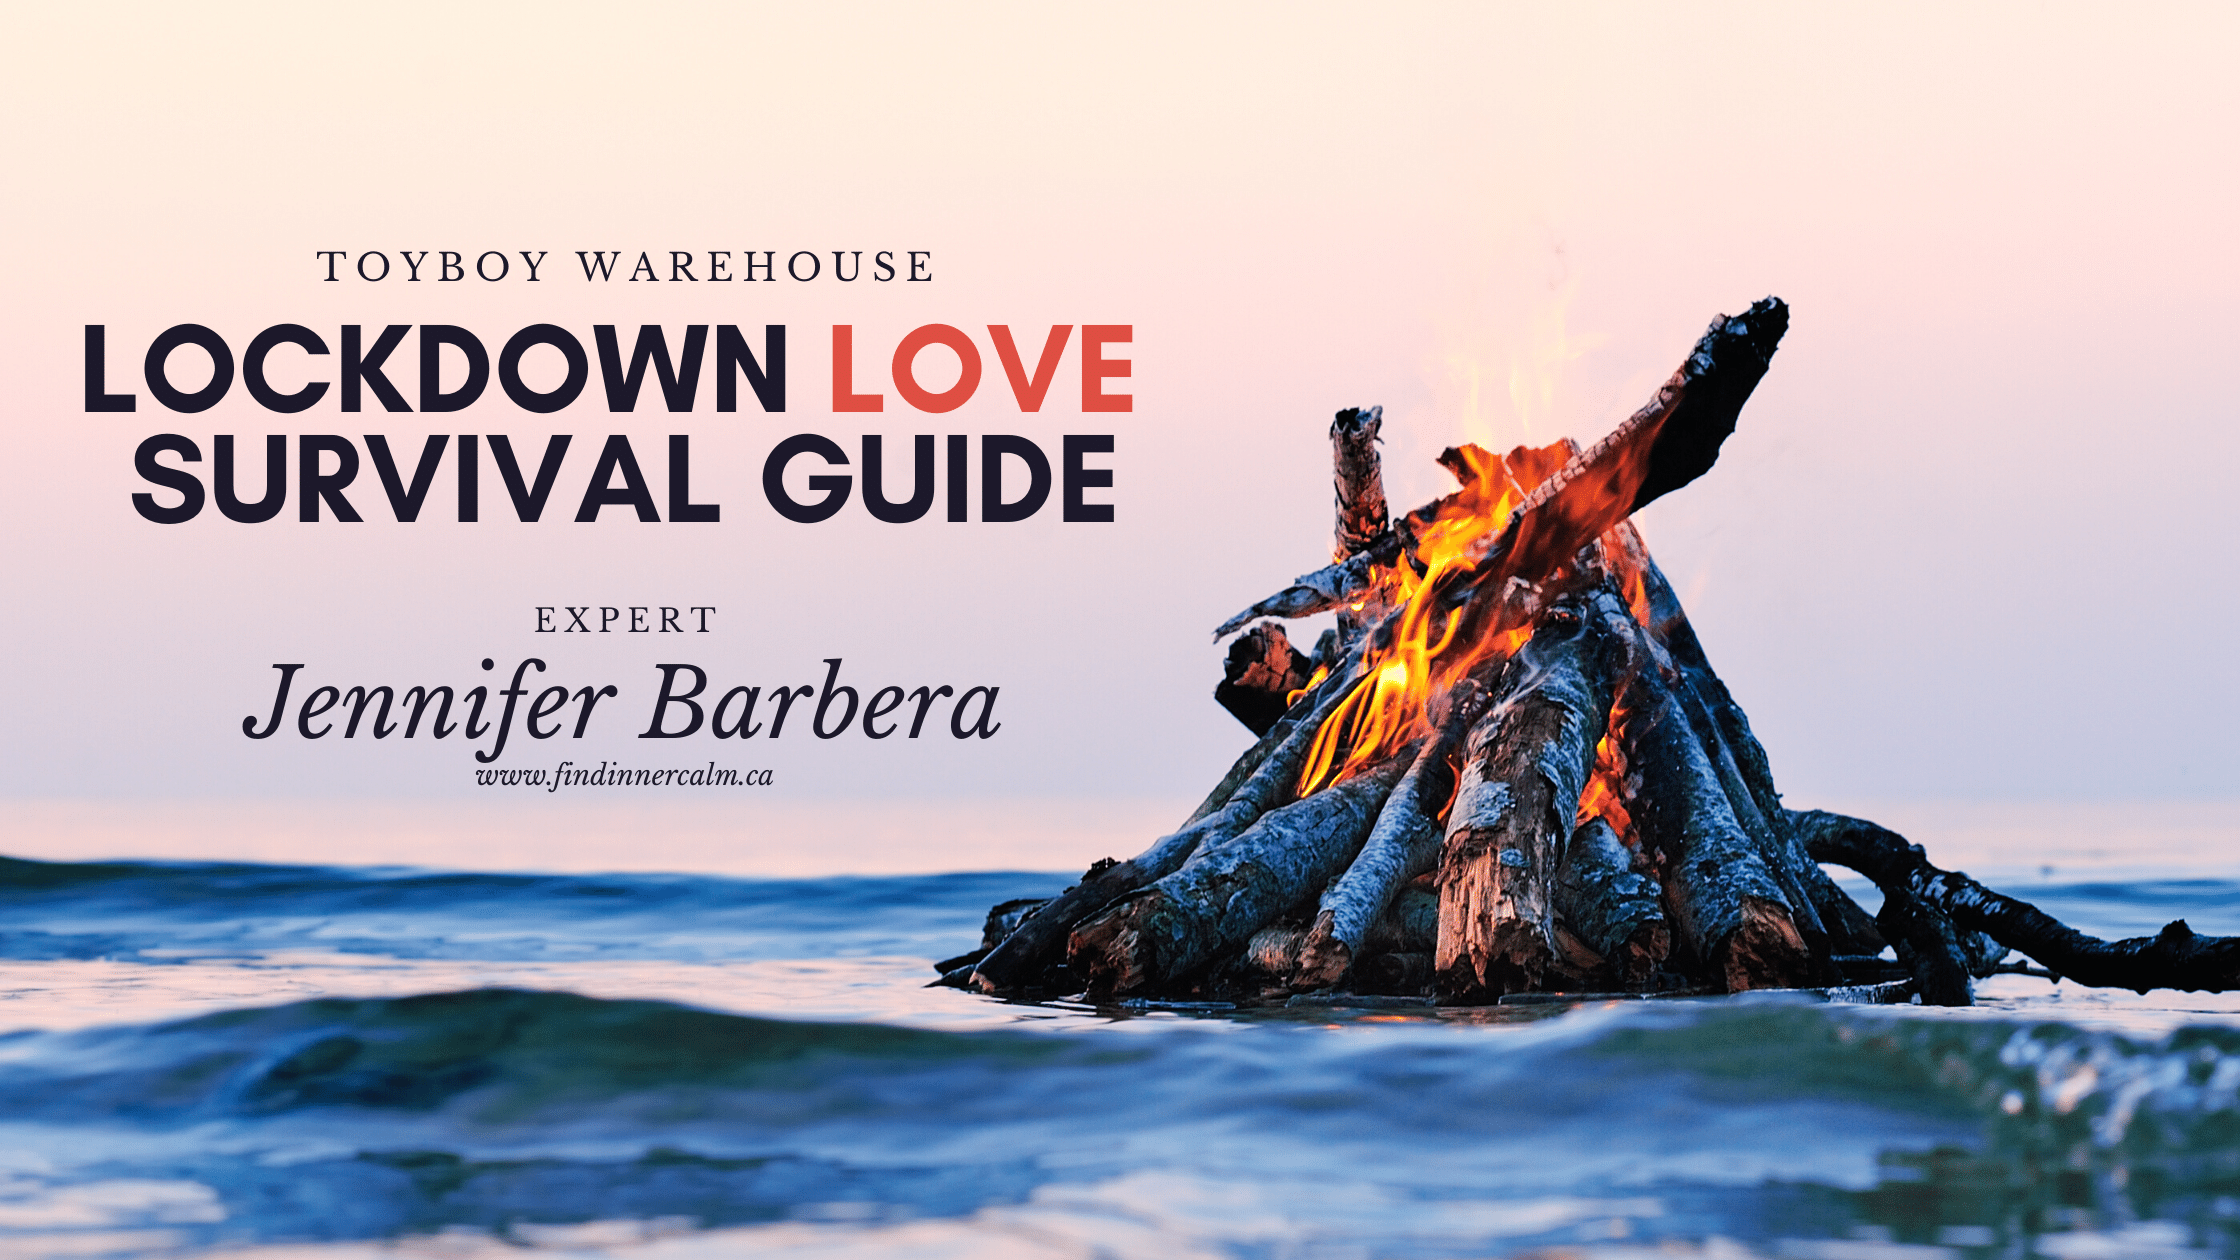 Lockdown Love Survival Guide – Expert: Jennifer Barbera